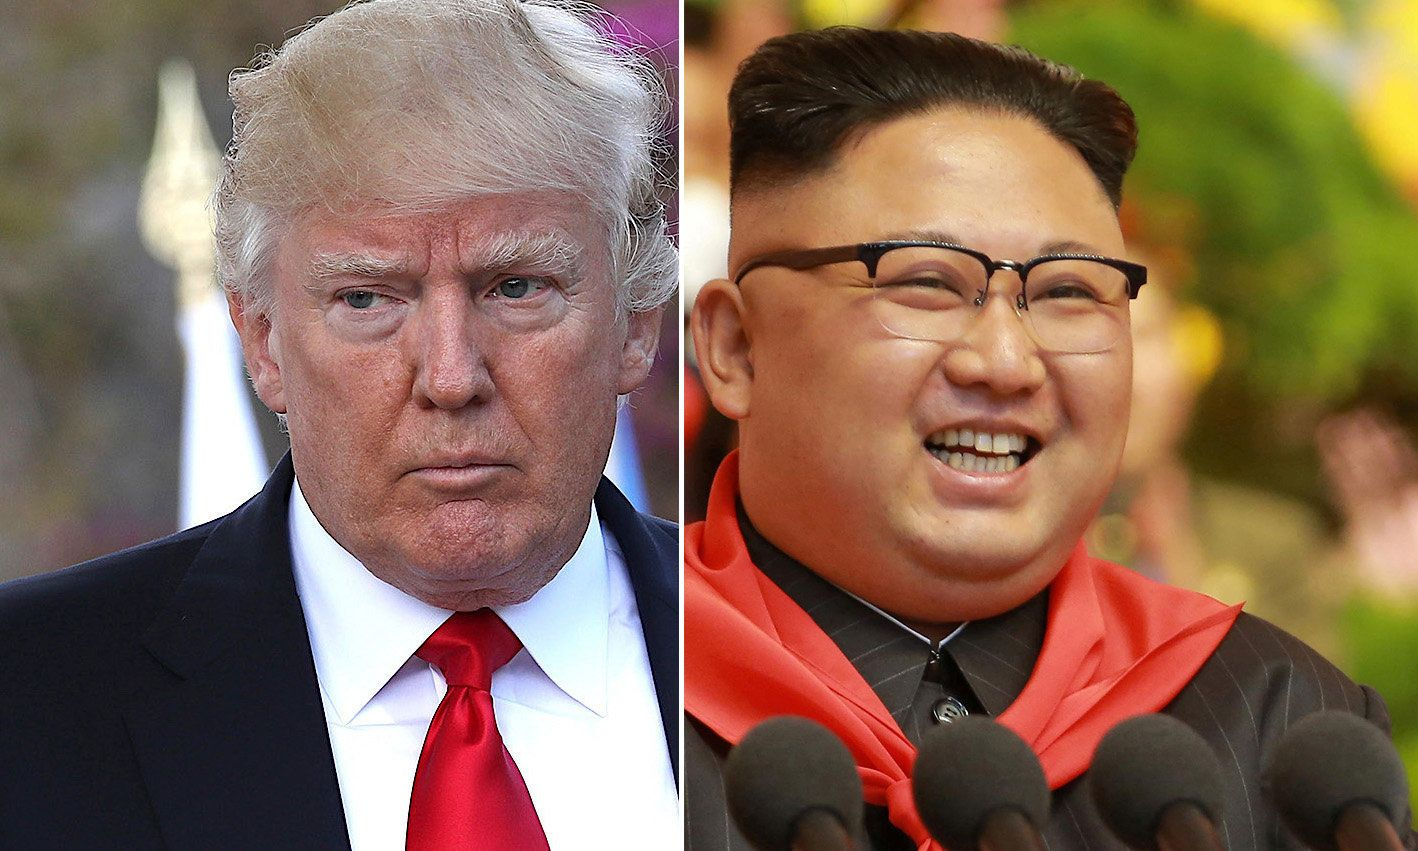 North Korea has condemned President Donald Trump for withdrawing the U.S. from the Paris climate agreement.